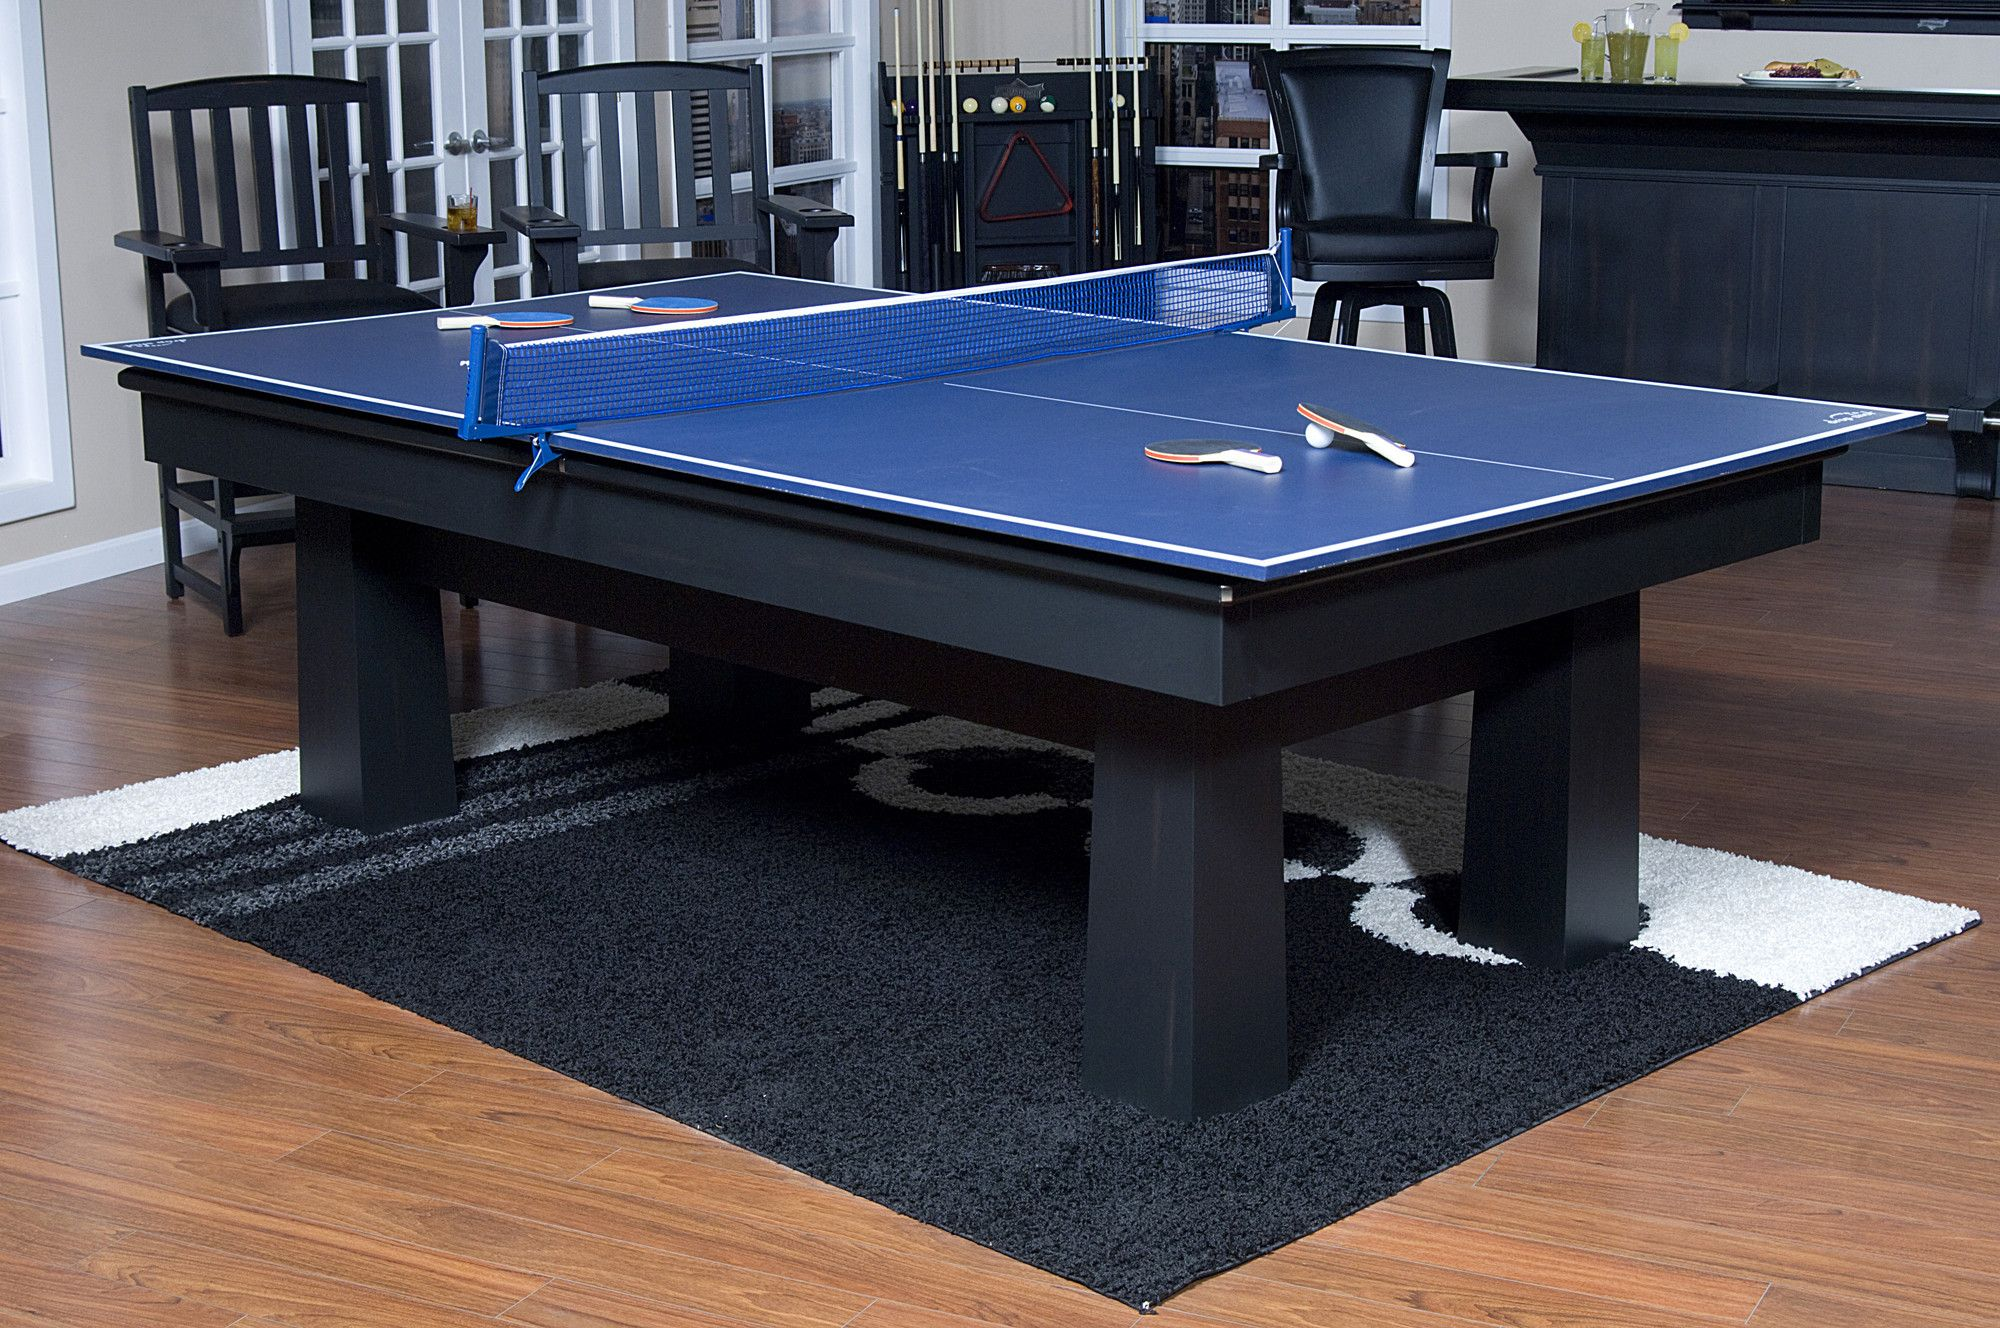 Foldable Indoor Conference Conversion Top With Paddles And Balls